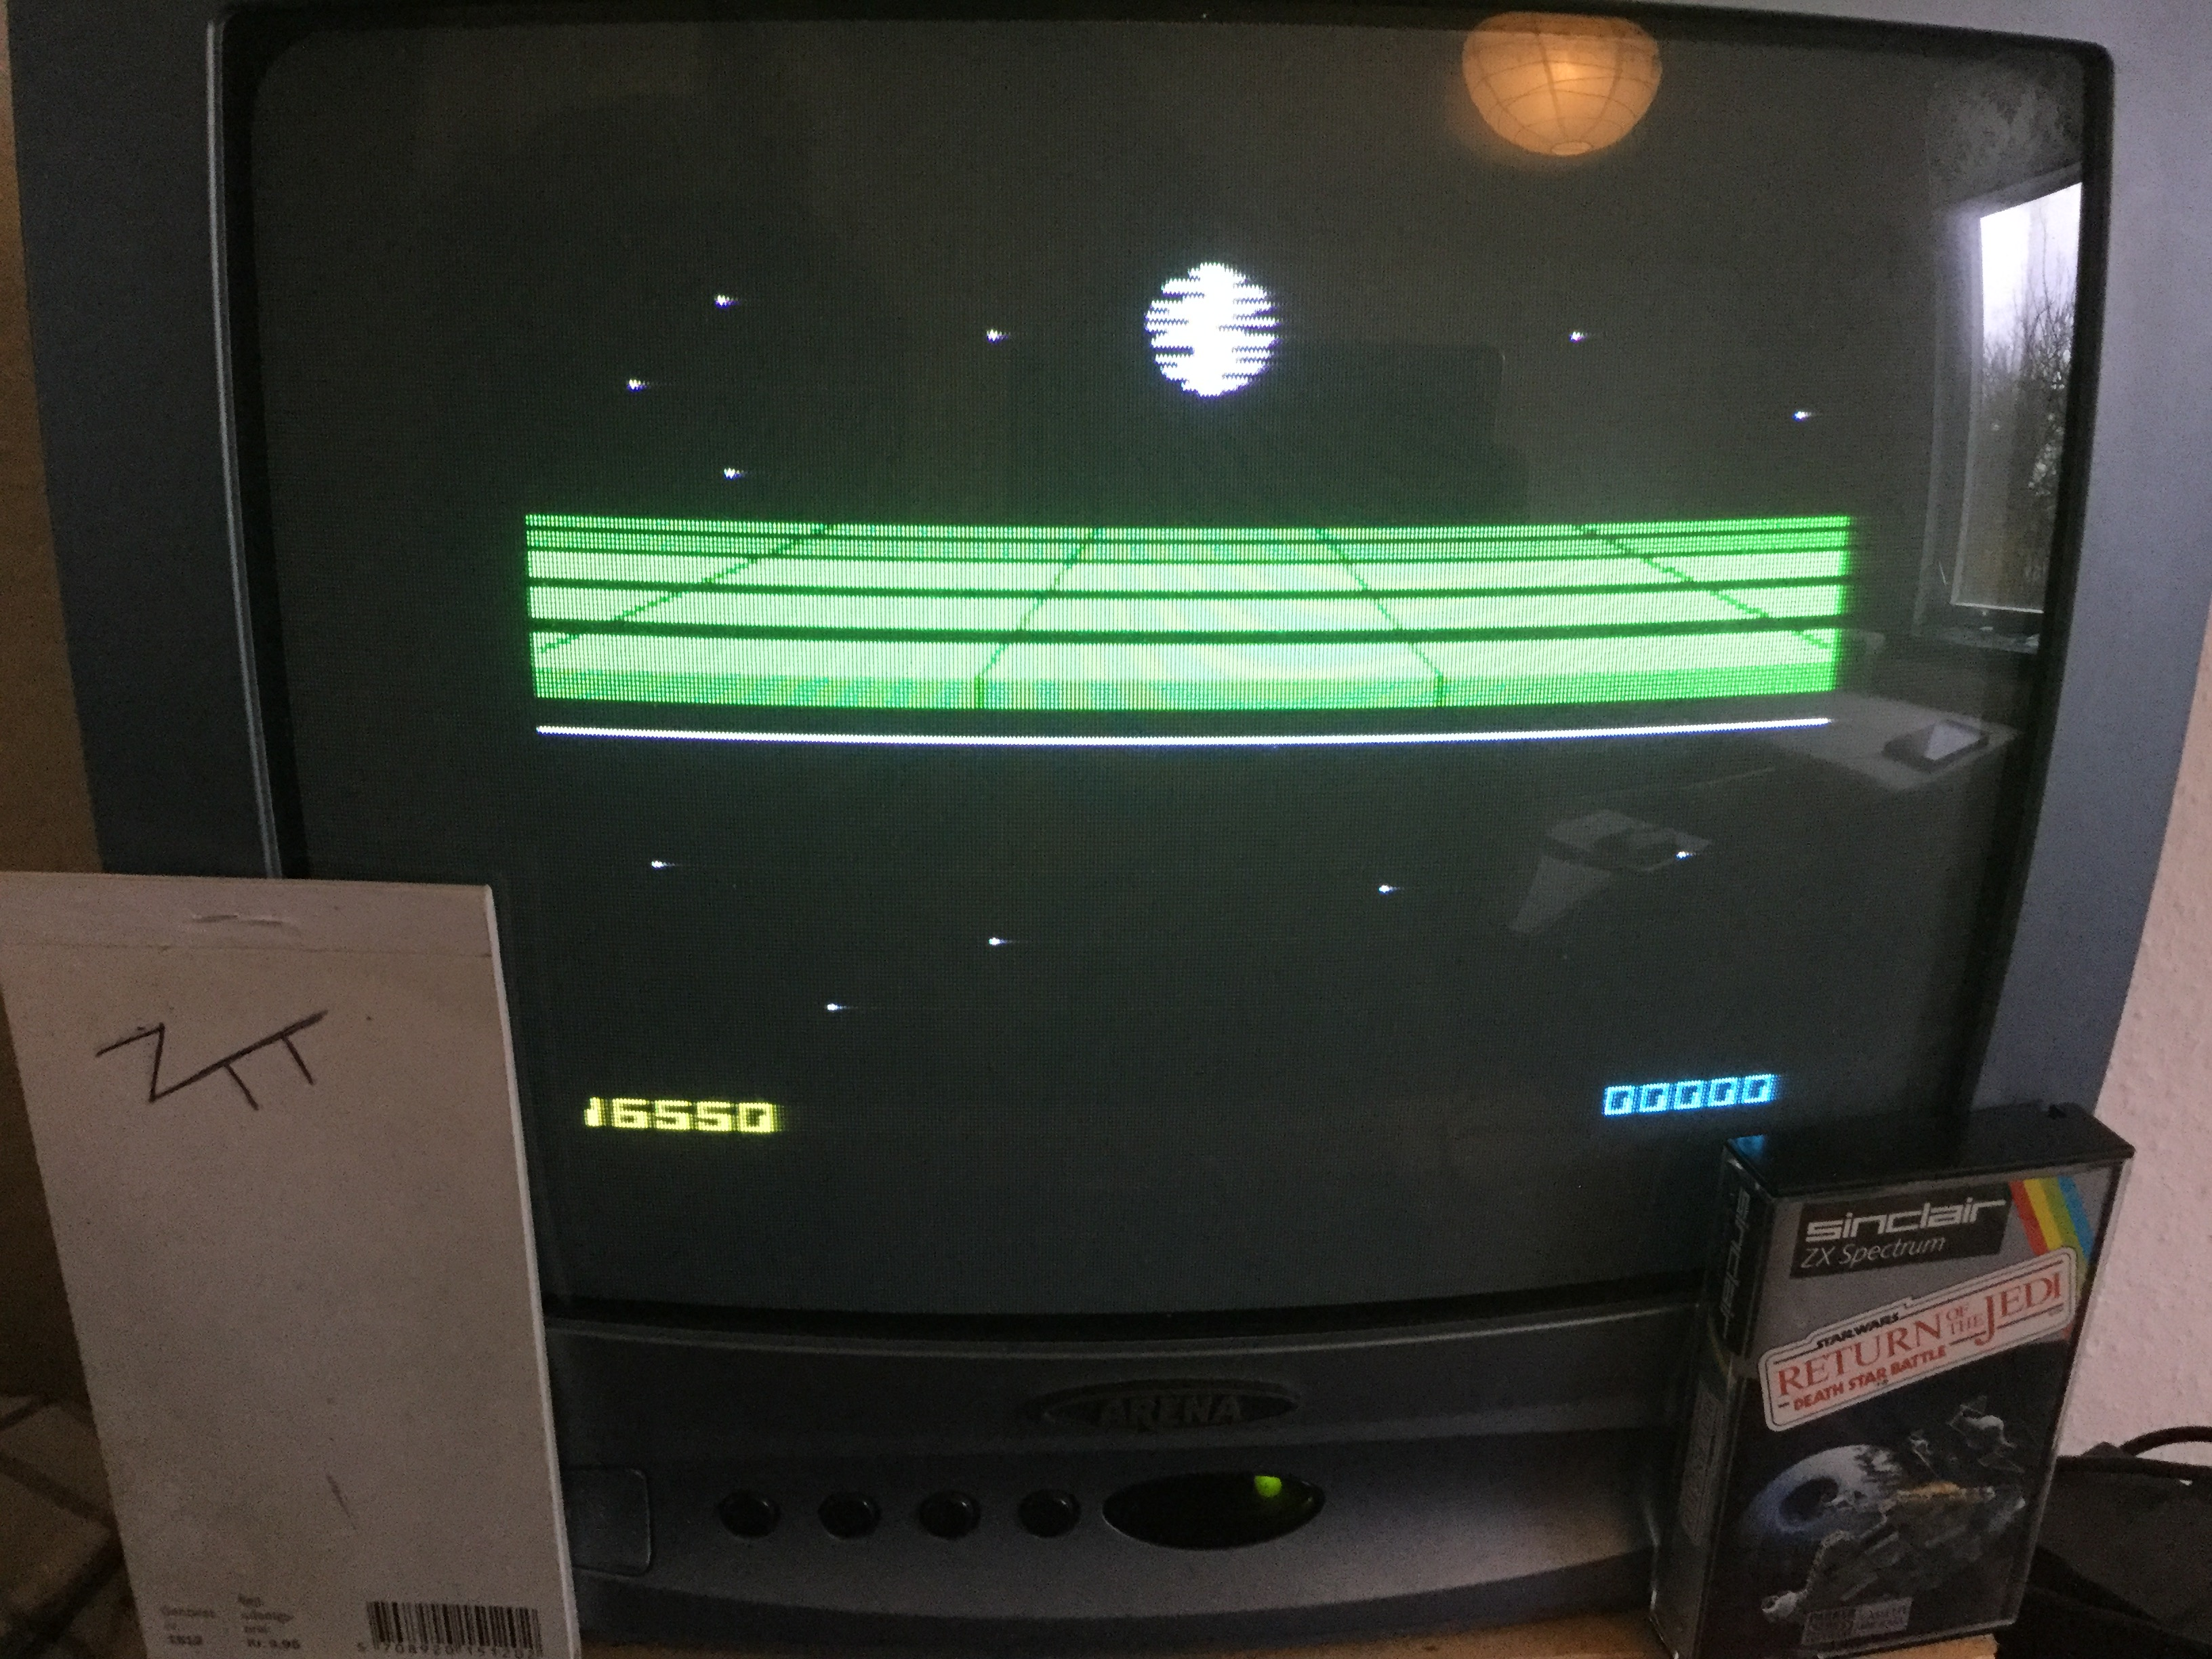 Frankie: Return Of The Jedi: Death Star Battle (ZX Spectrum) 16,550 points on 2019-02-21 04:48:36